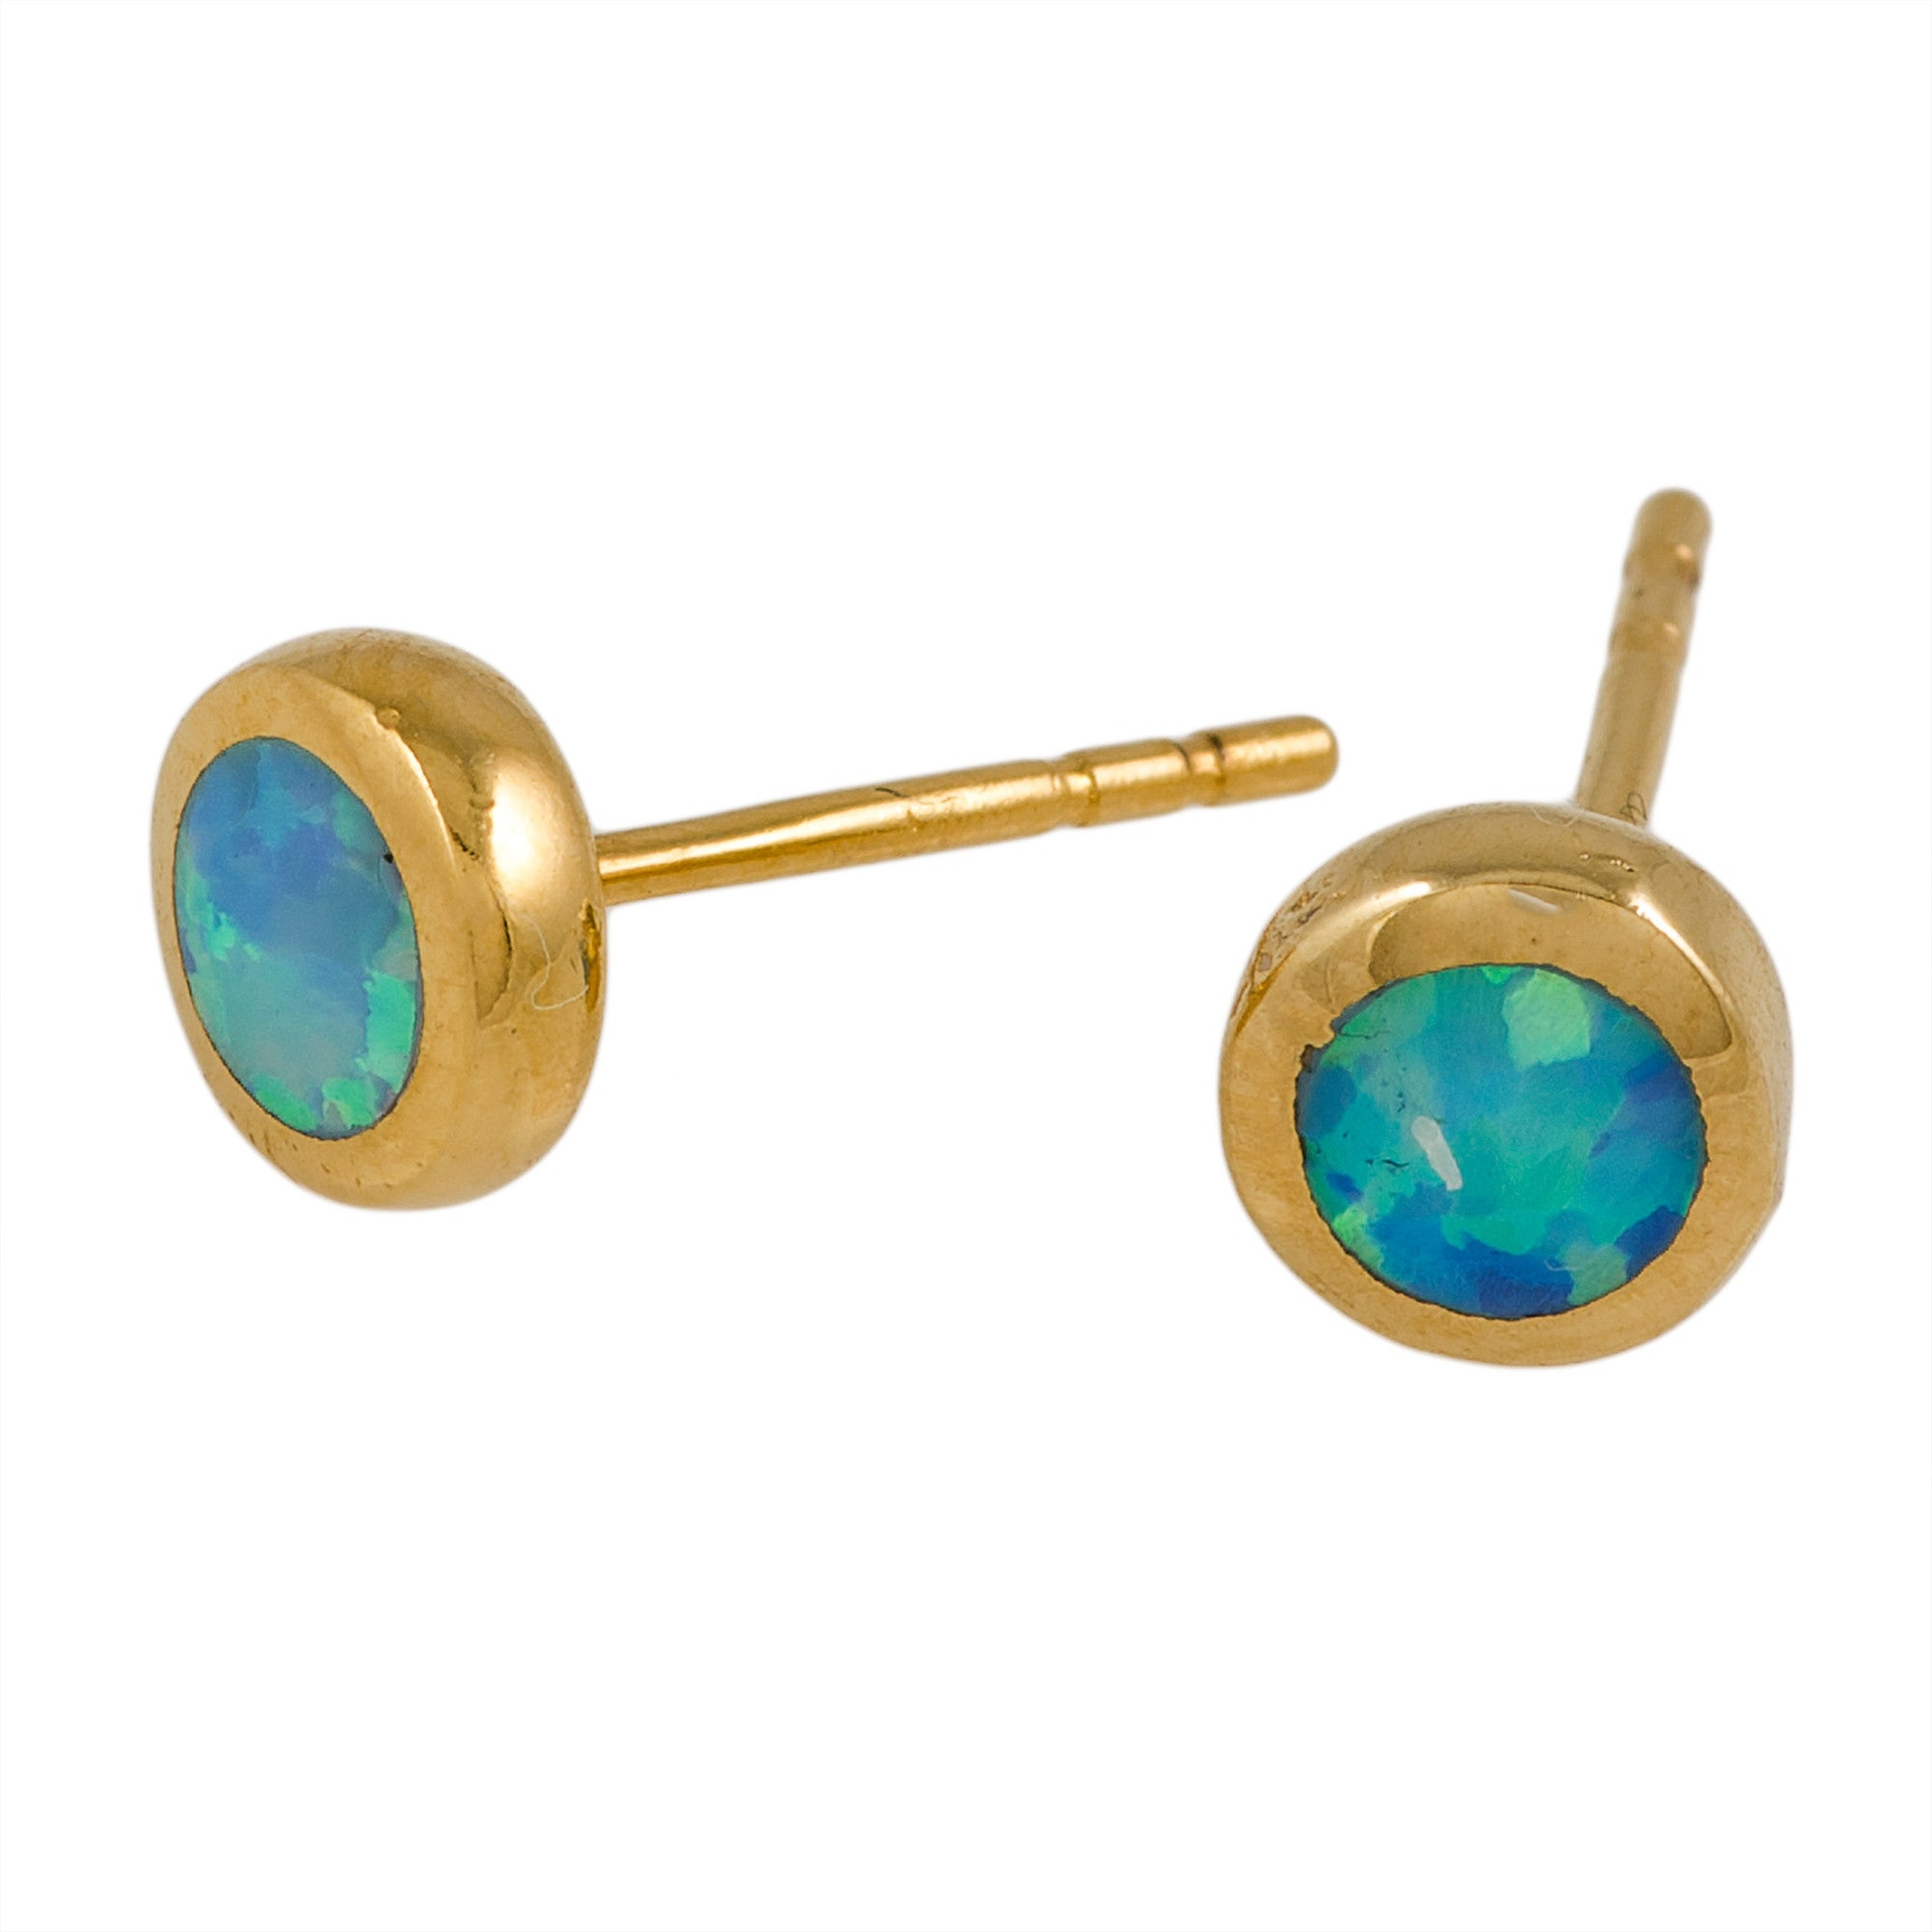 opal jewelry opalearclimberrose marie asymmetric stud ear by altana fine collections earrings genuine pair climbers